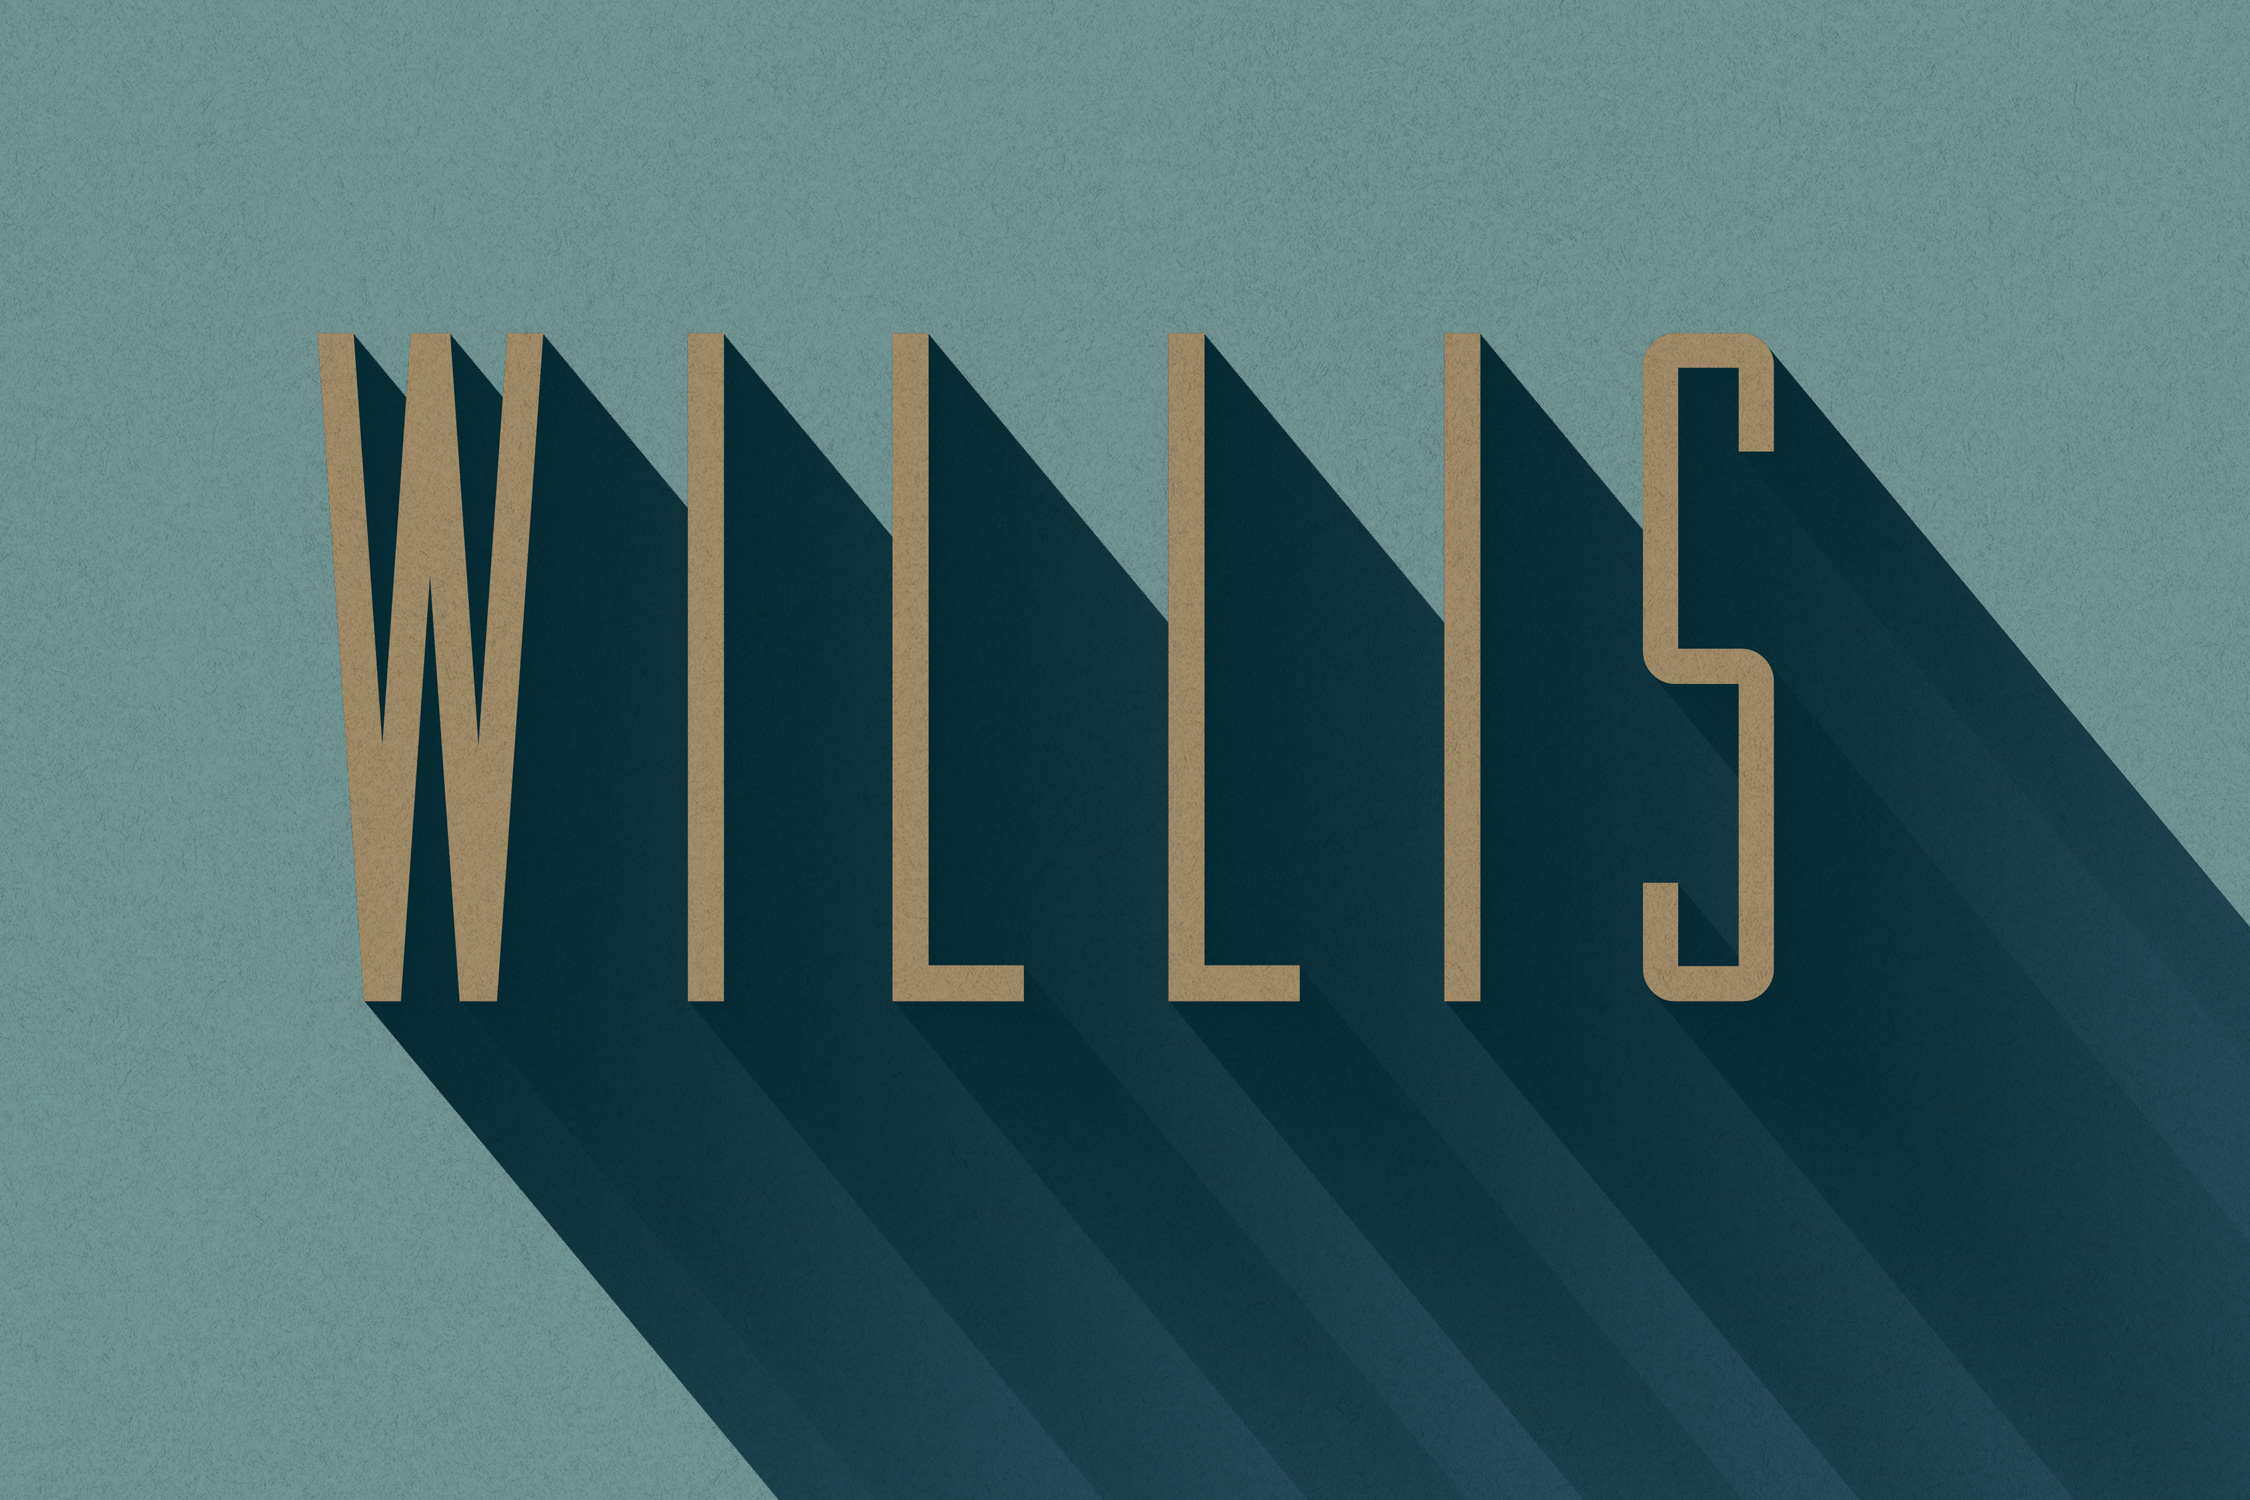 Willis_Type_Treatment